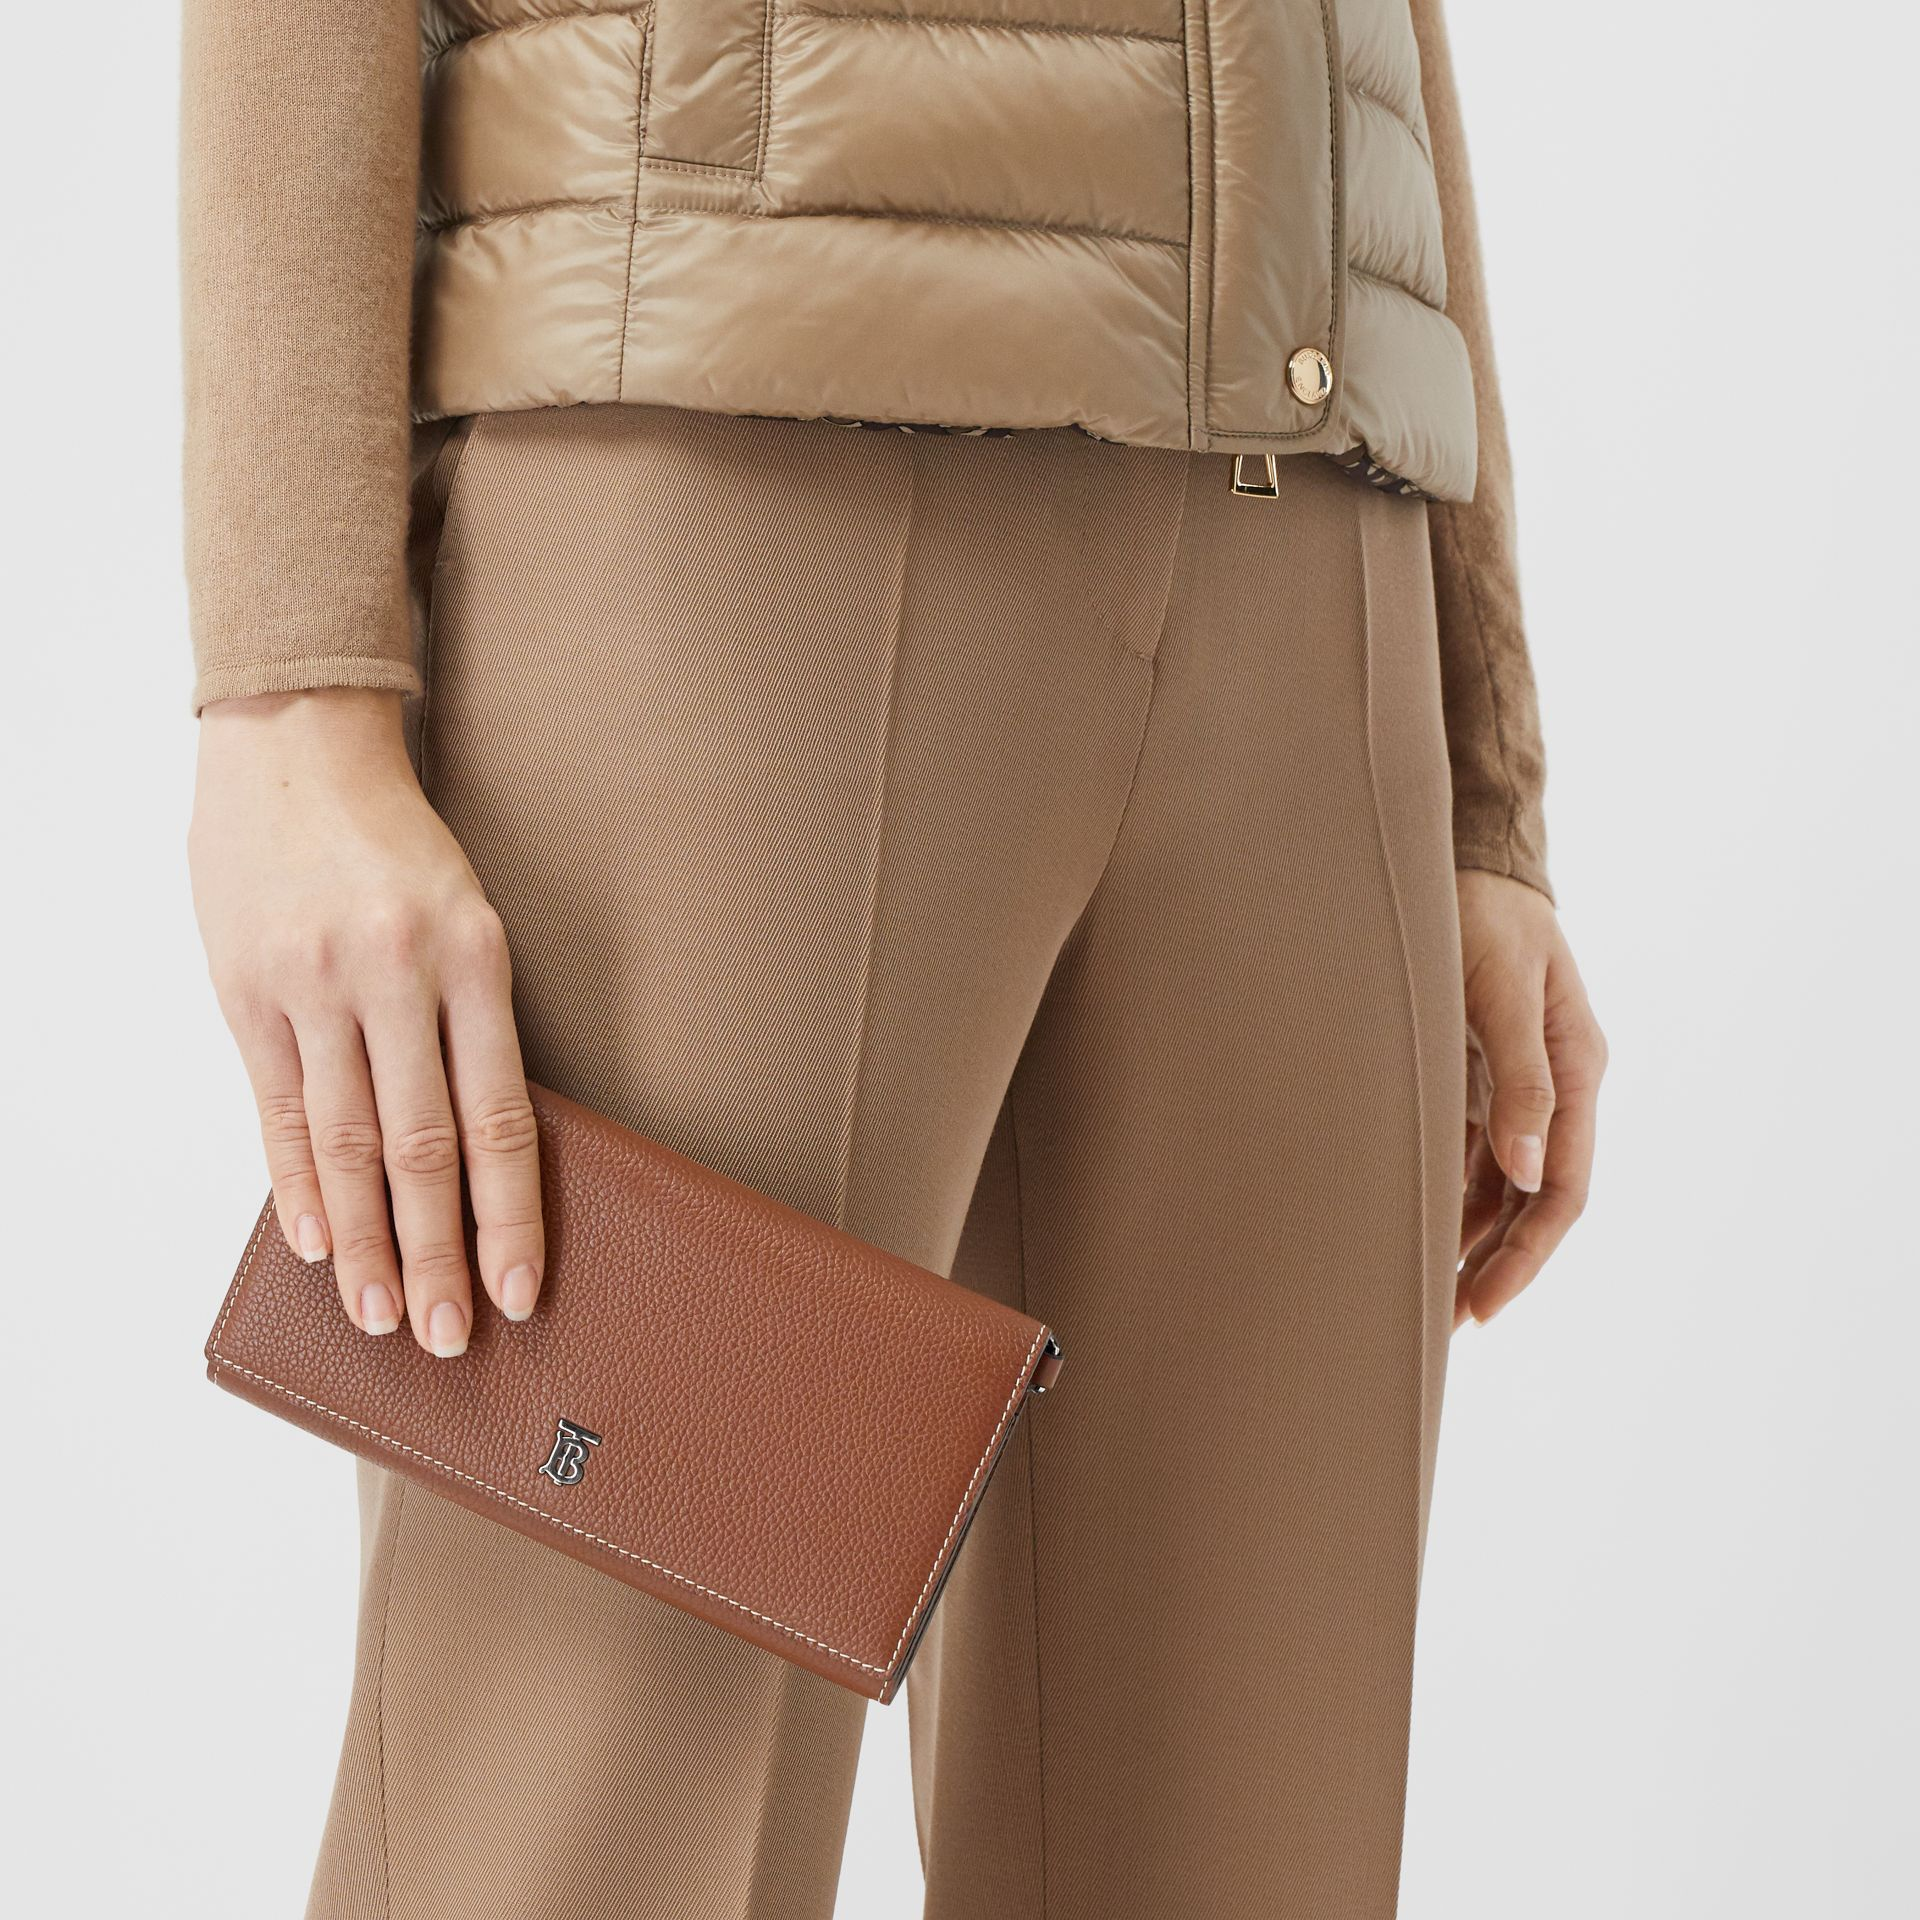 Grainy Leather Wallet with Detachable Strap in Tan | Burberry United States - gallery image 11